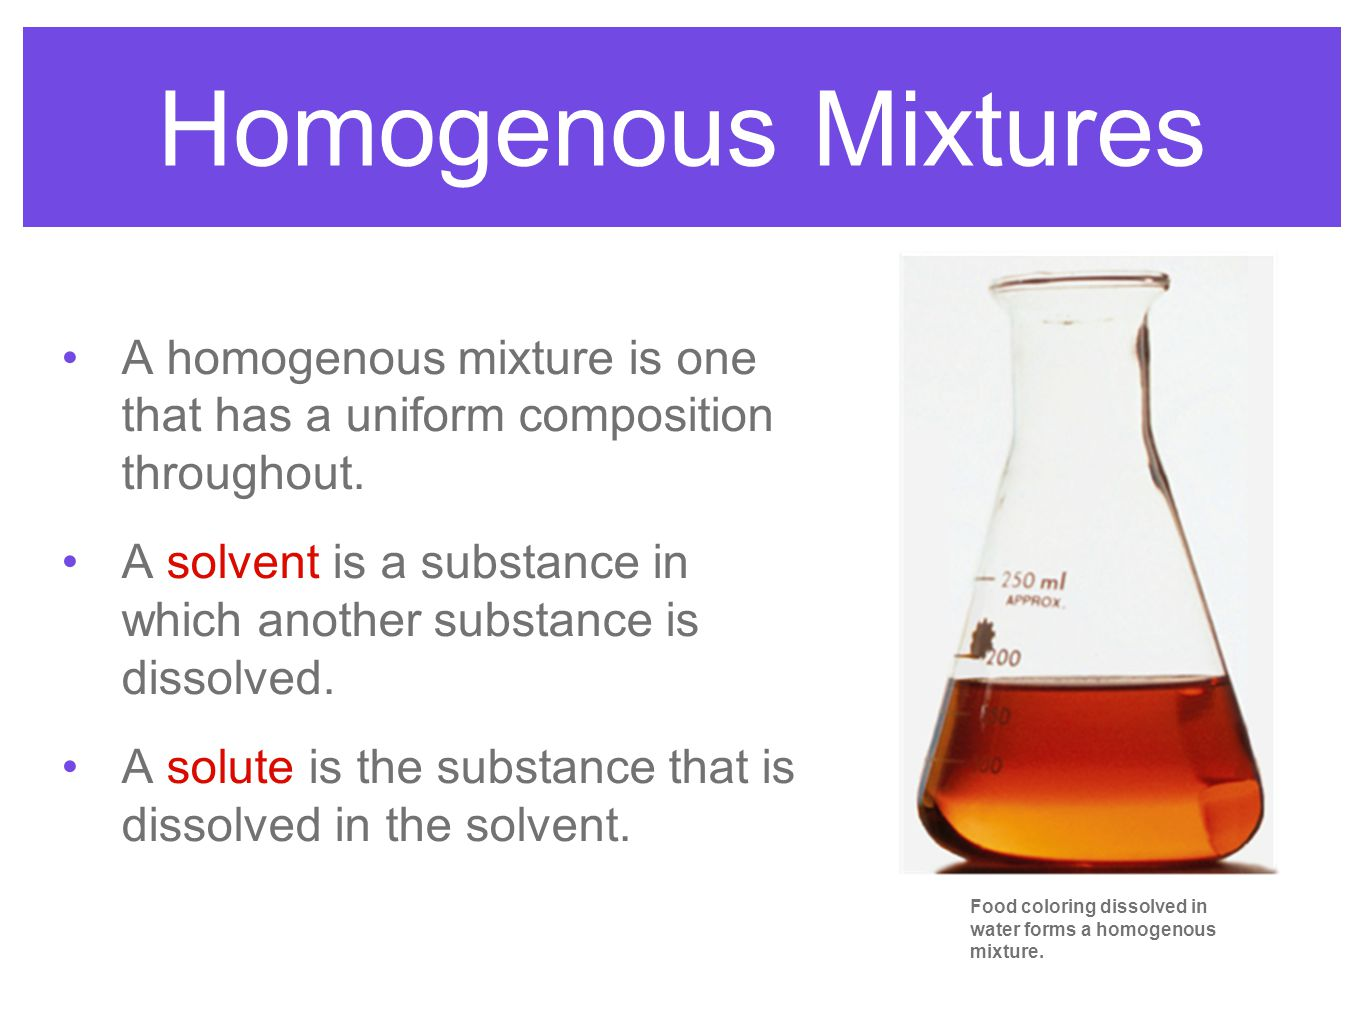 Homogenous Mixtures A homogenous mixture is one that has a uniform composition throughout.